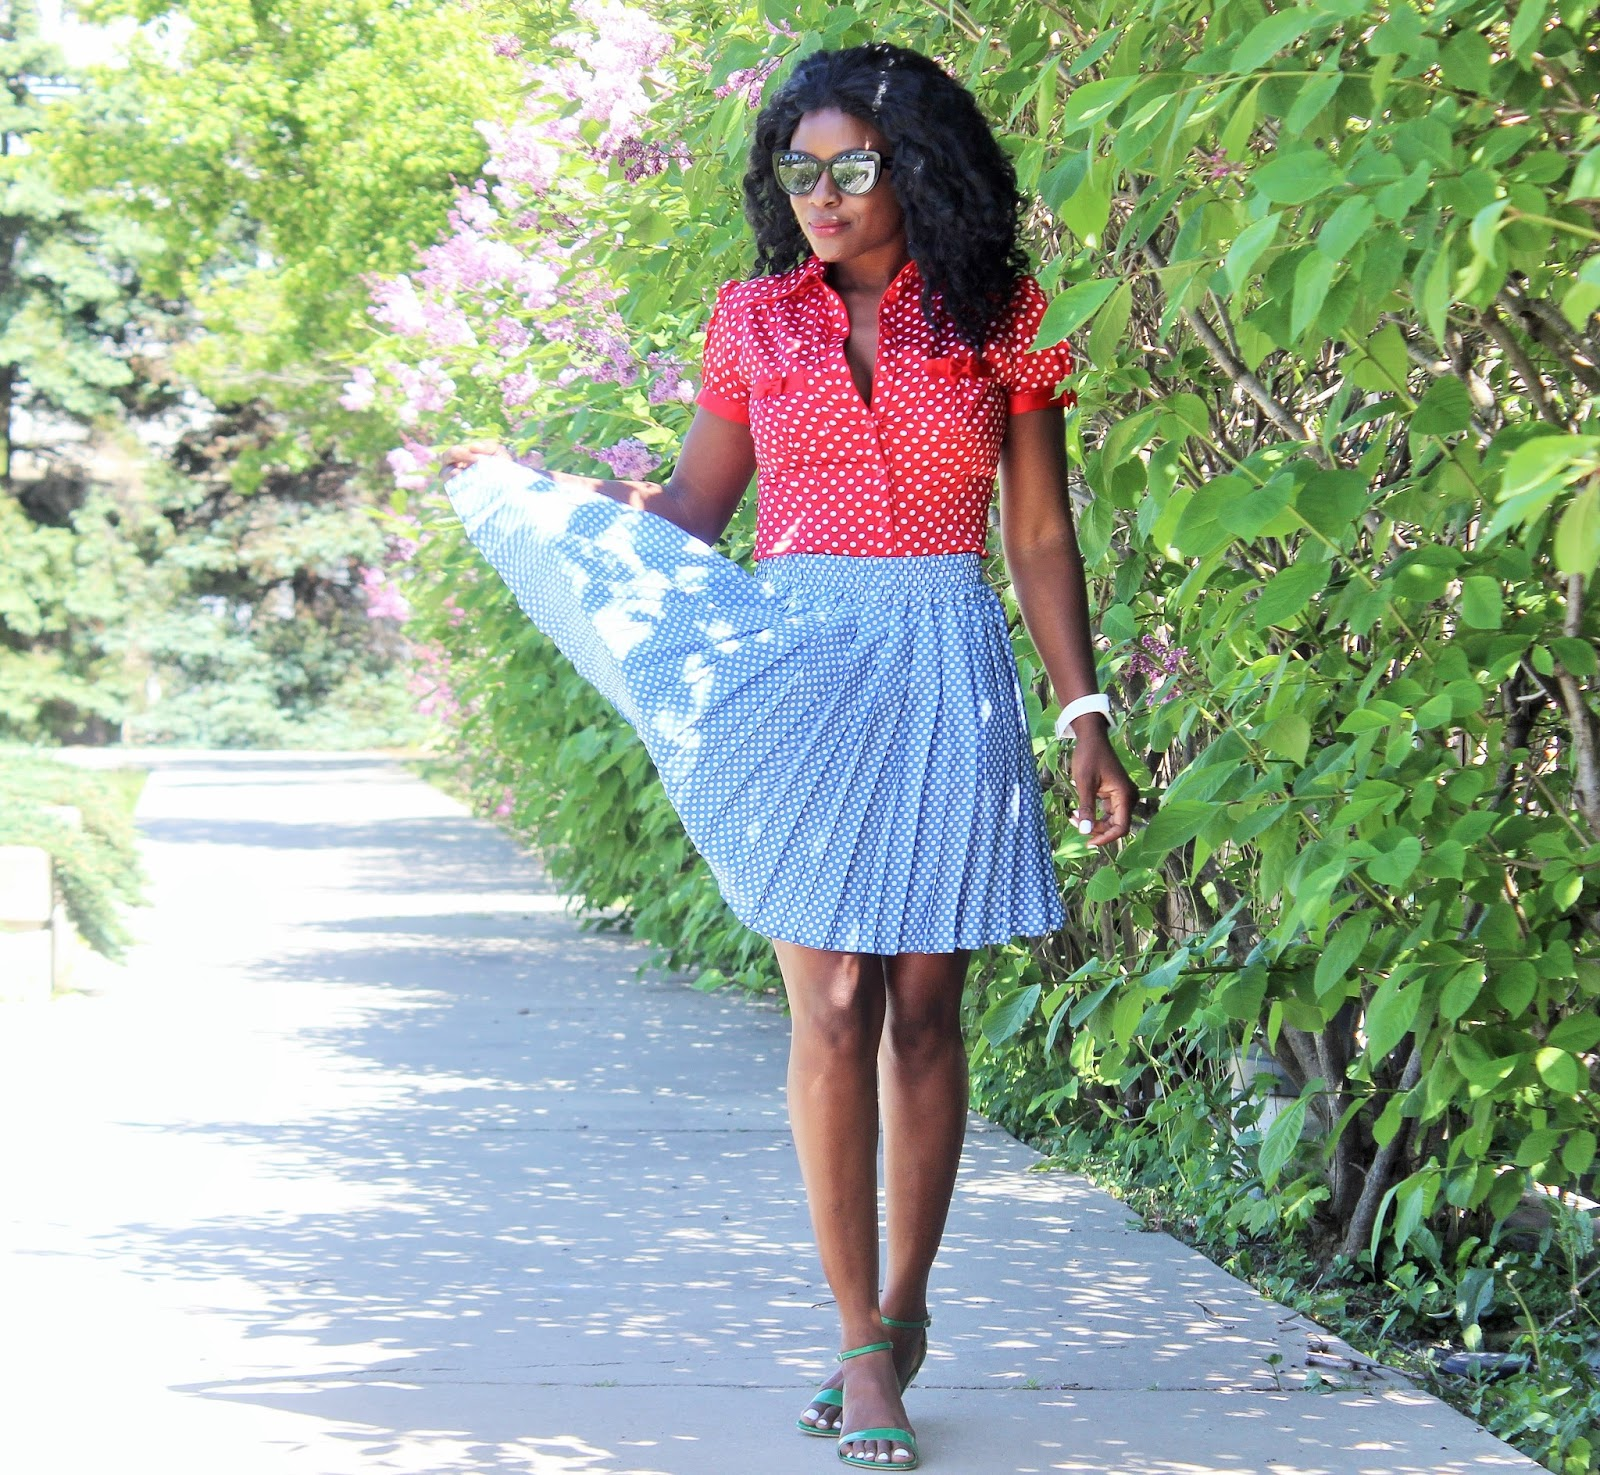 POLKA DOTS AND BOWS | 1 OUTFIT 2 DIFFERENT LOOKS